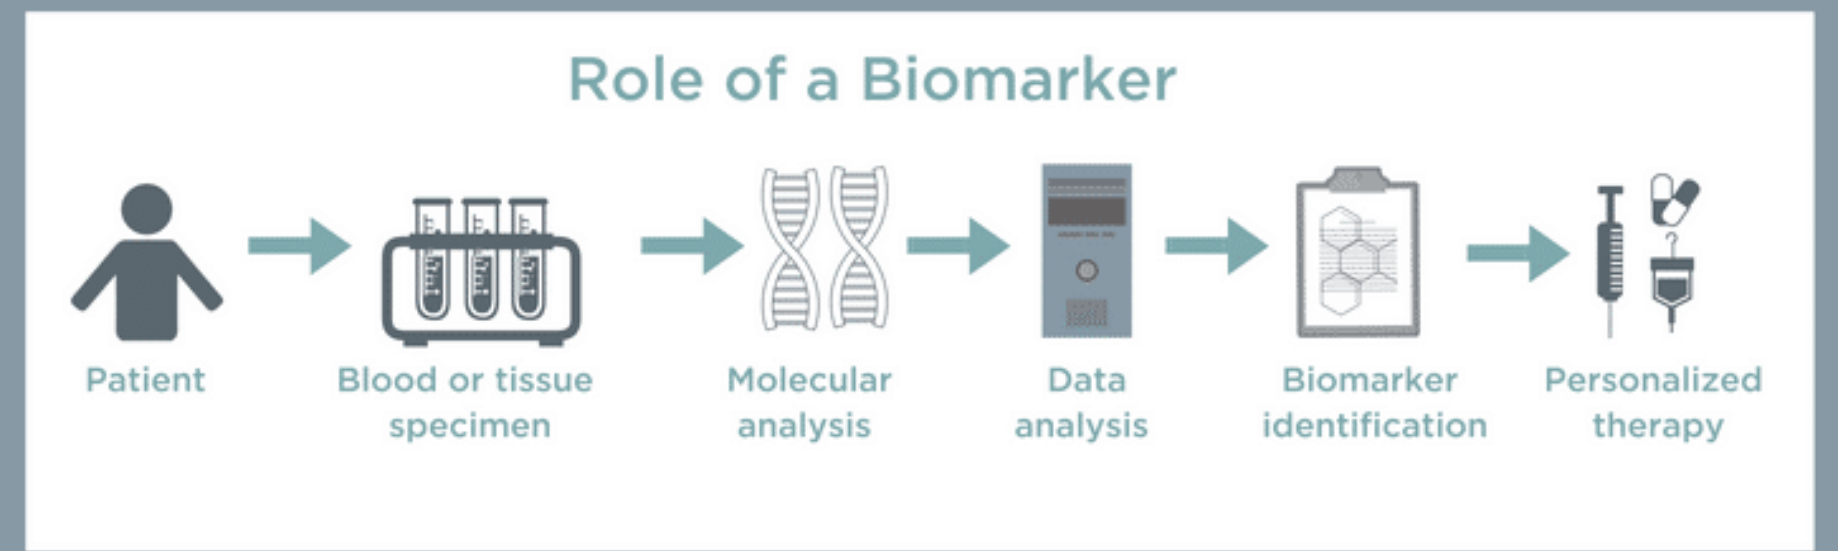 Science in Plain Language: What is a Biomarker? | by Sam Westreich ...